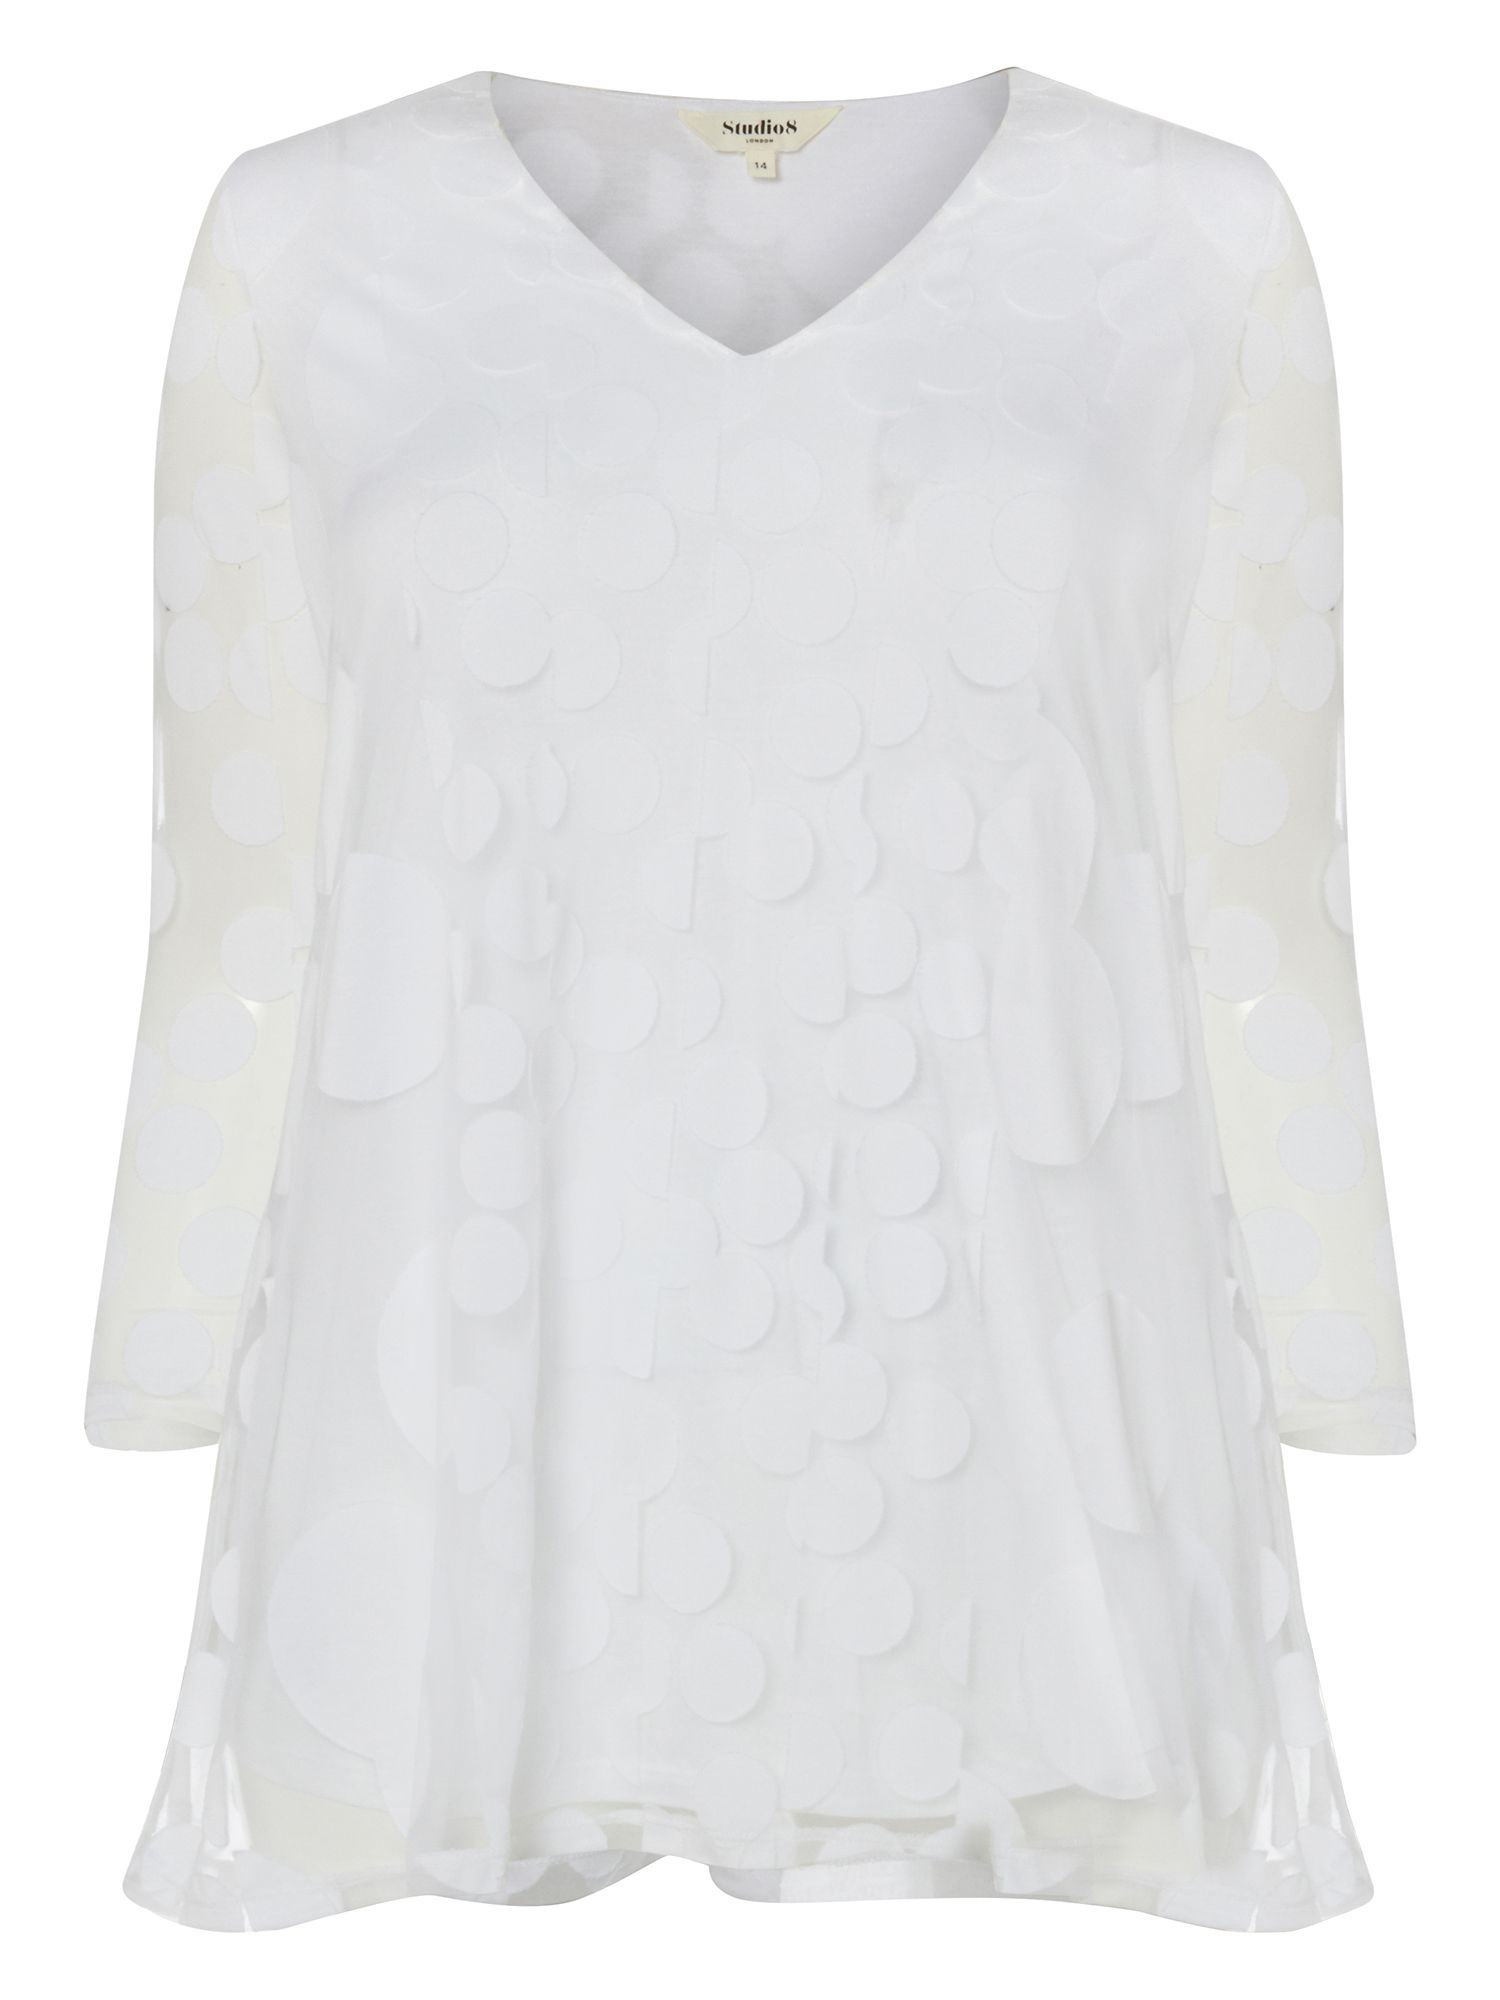 Studio 8 Ashanti Top, White